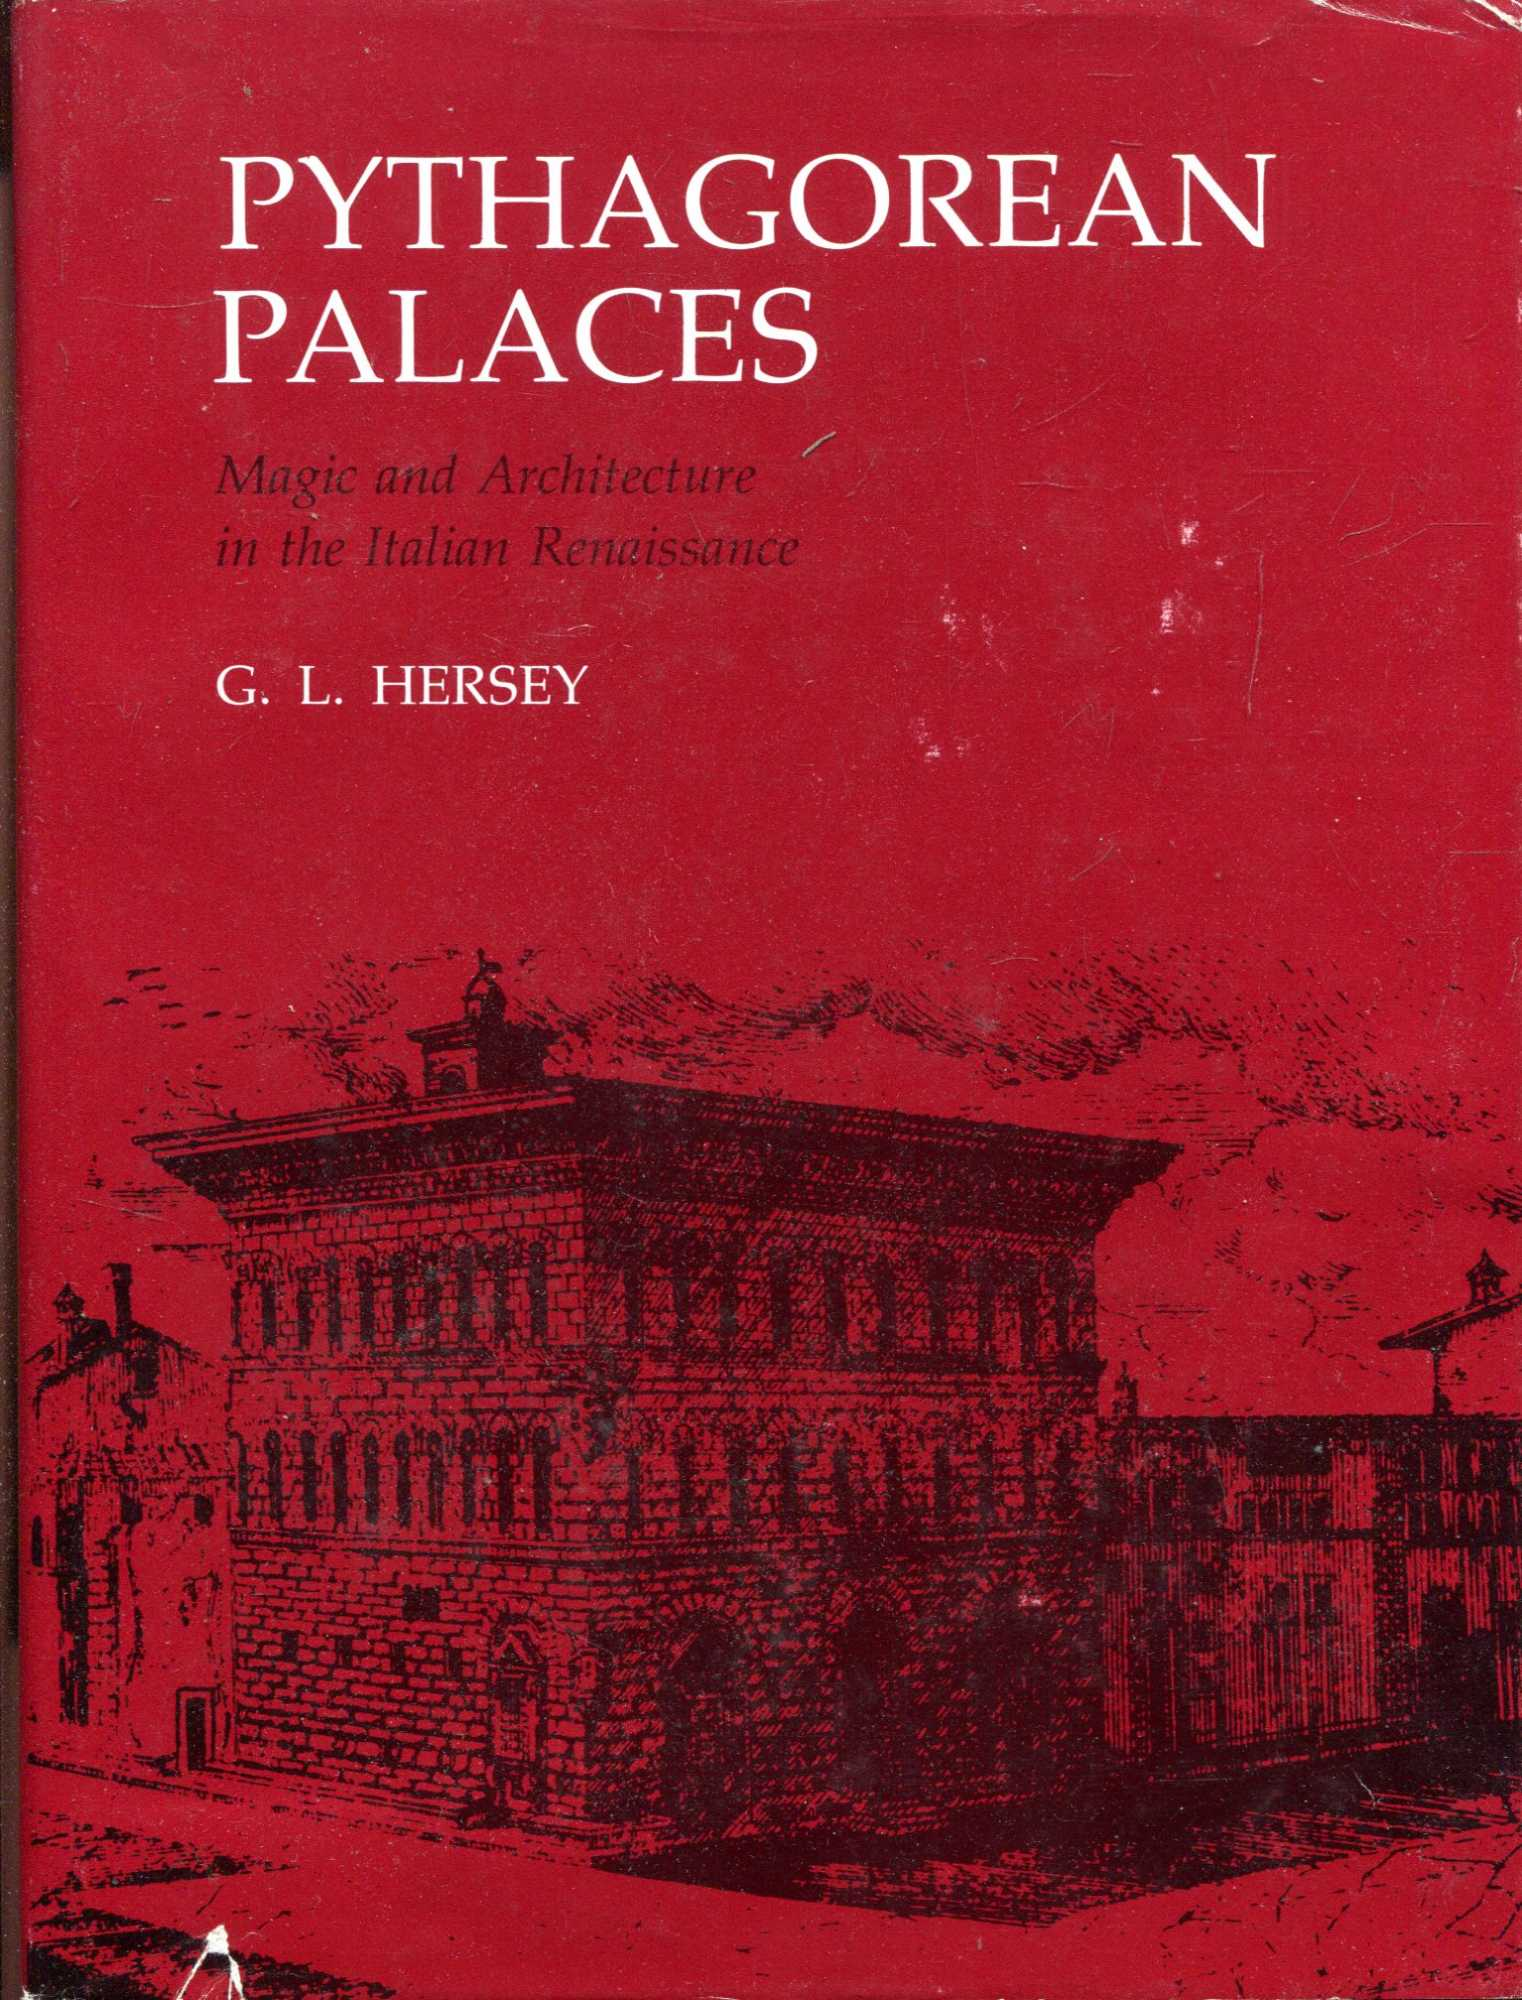 Image for Pythagorean palaces: Magic and architecture in the Italian Renaissance